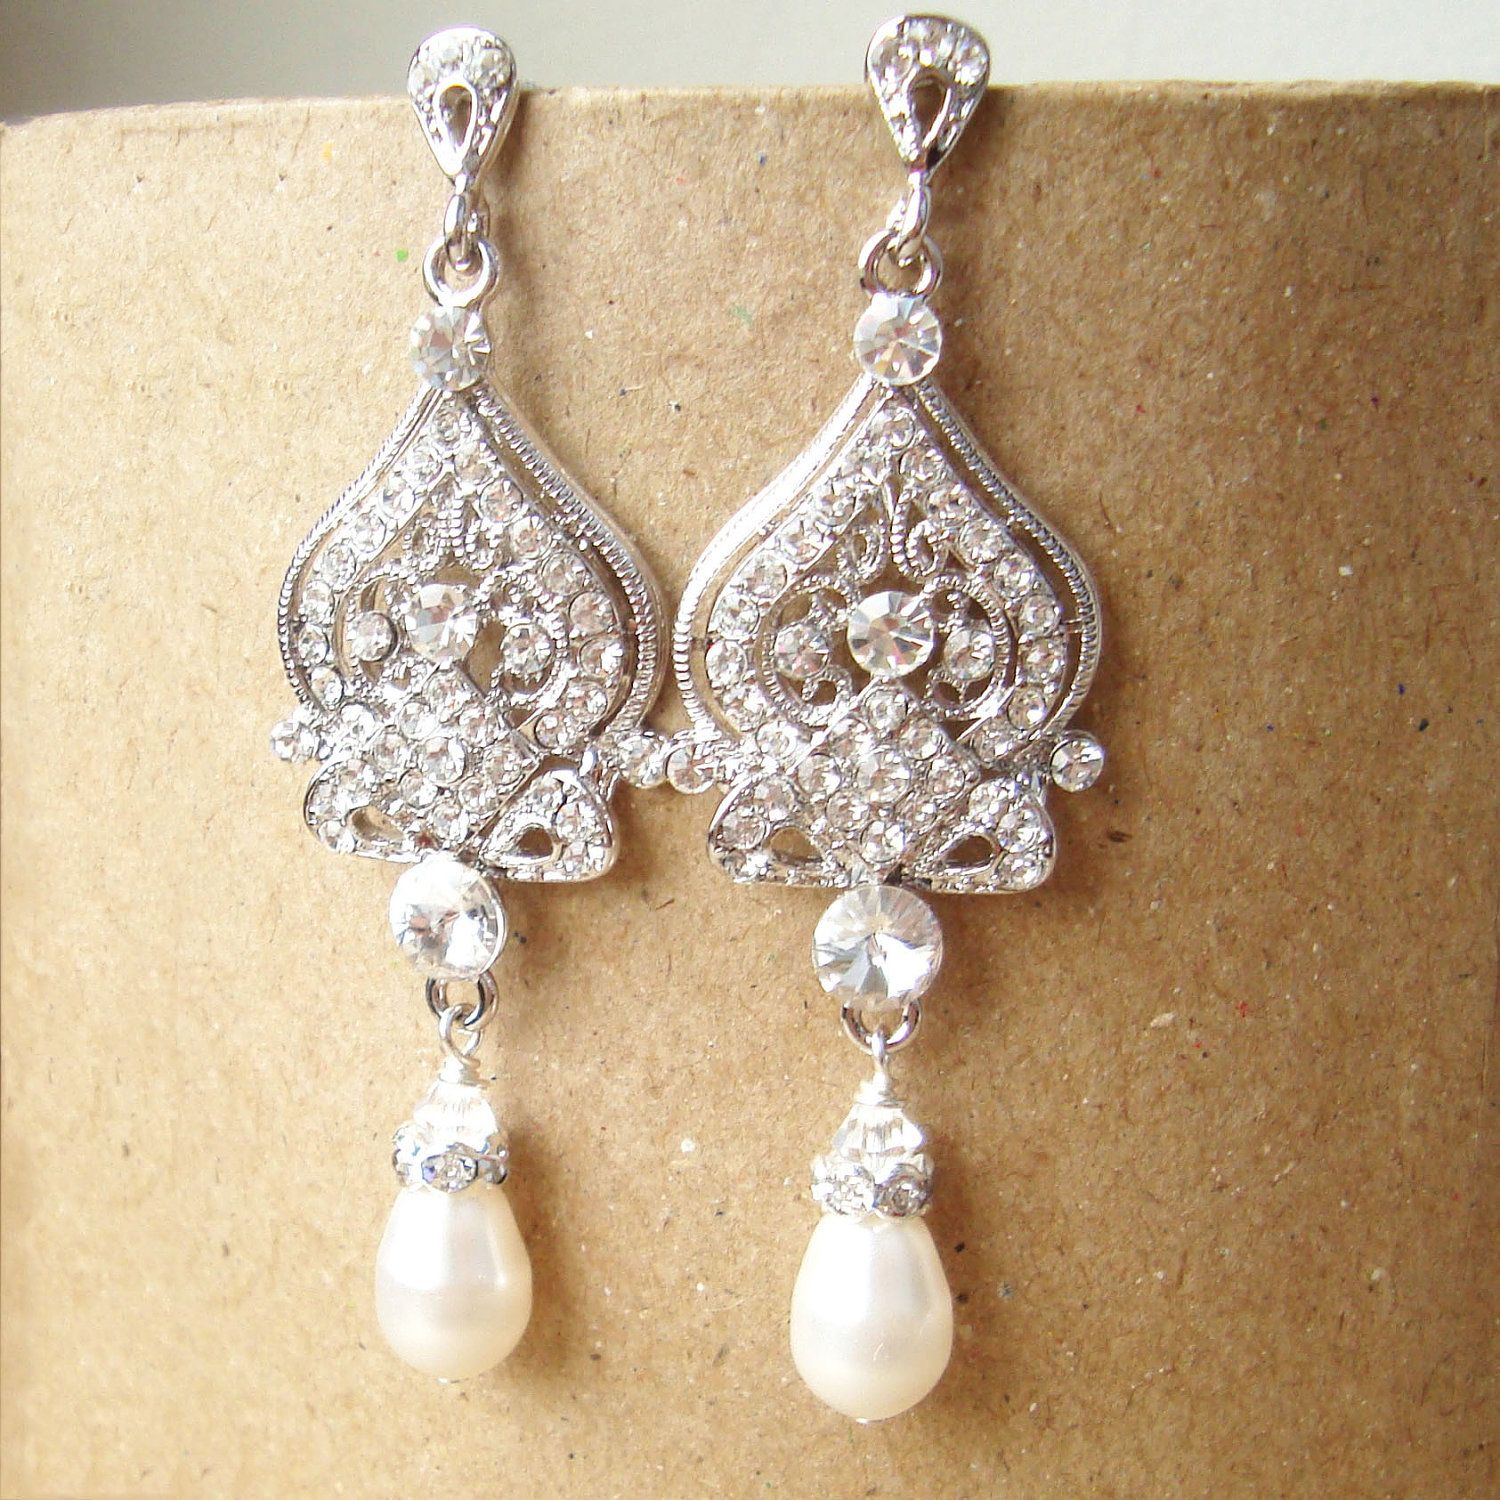 Chandelier Bridal Earrings Vintage Wedding Earrings Pearl Drops Art Deco Bridal Jewelry Old